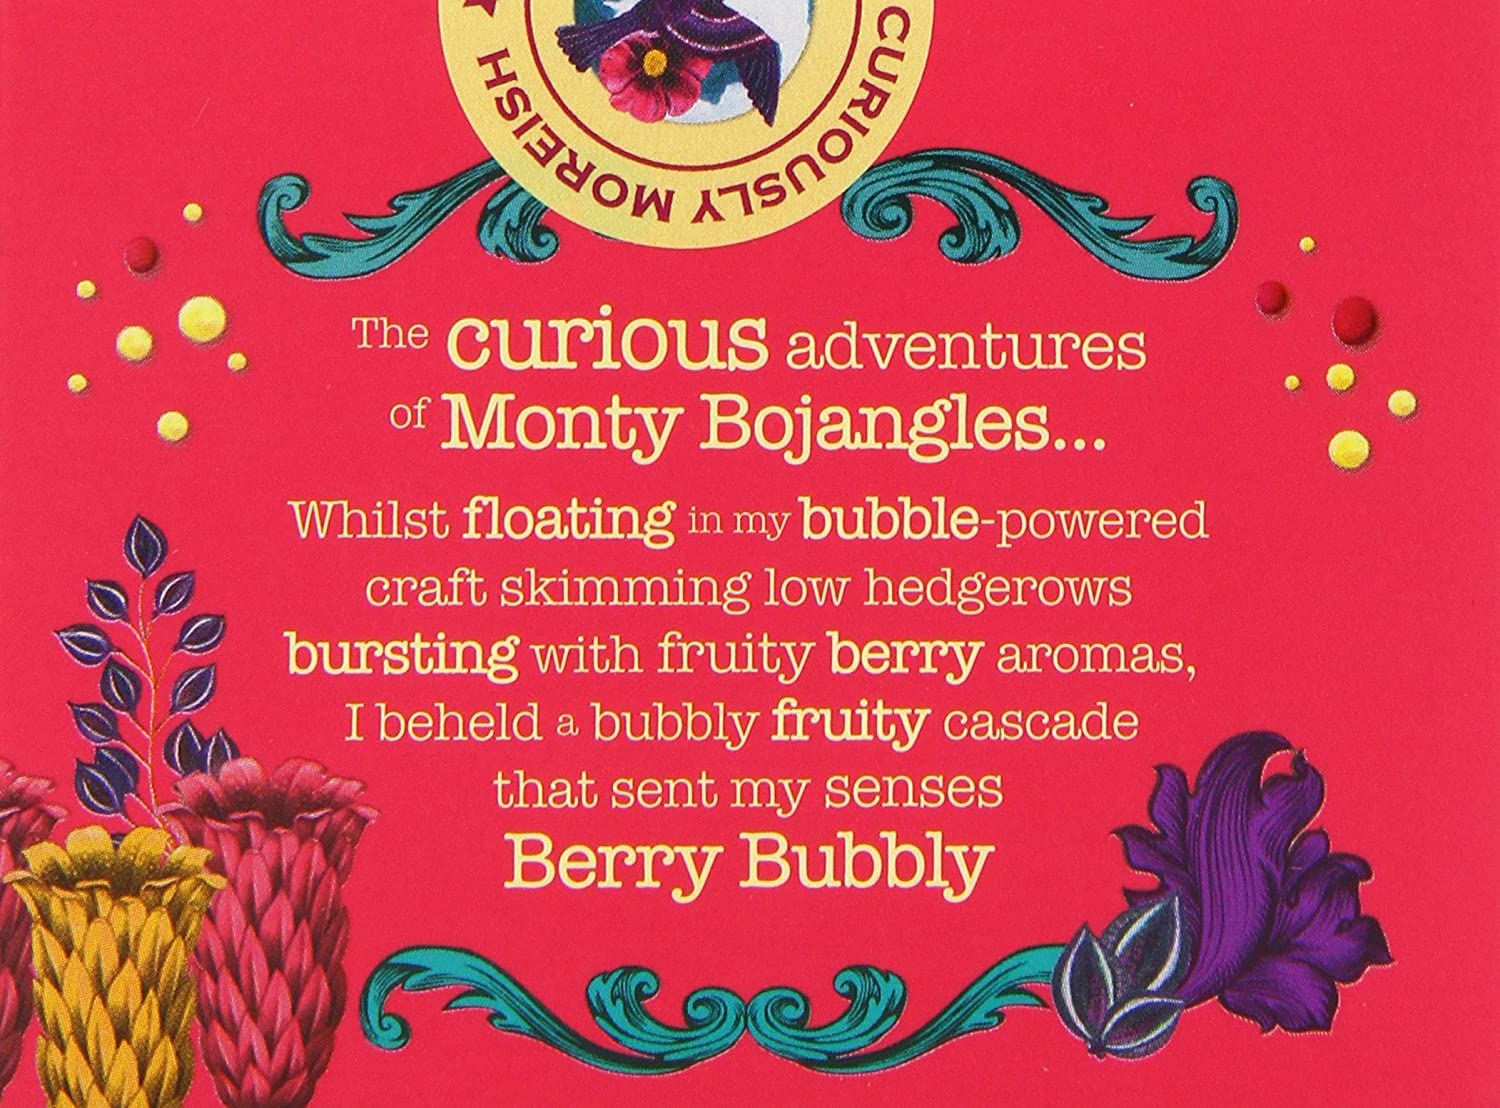 monty bojangles french dusted truffles berry bubbly 150 g pack of